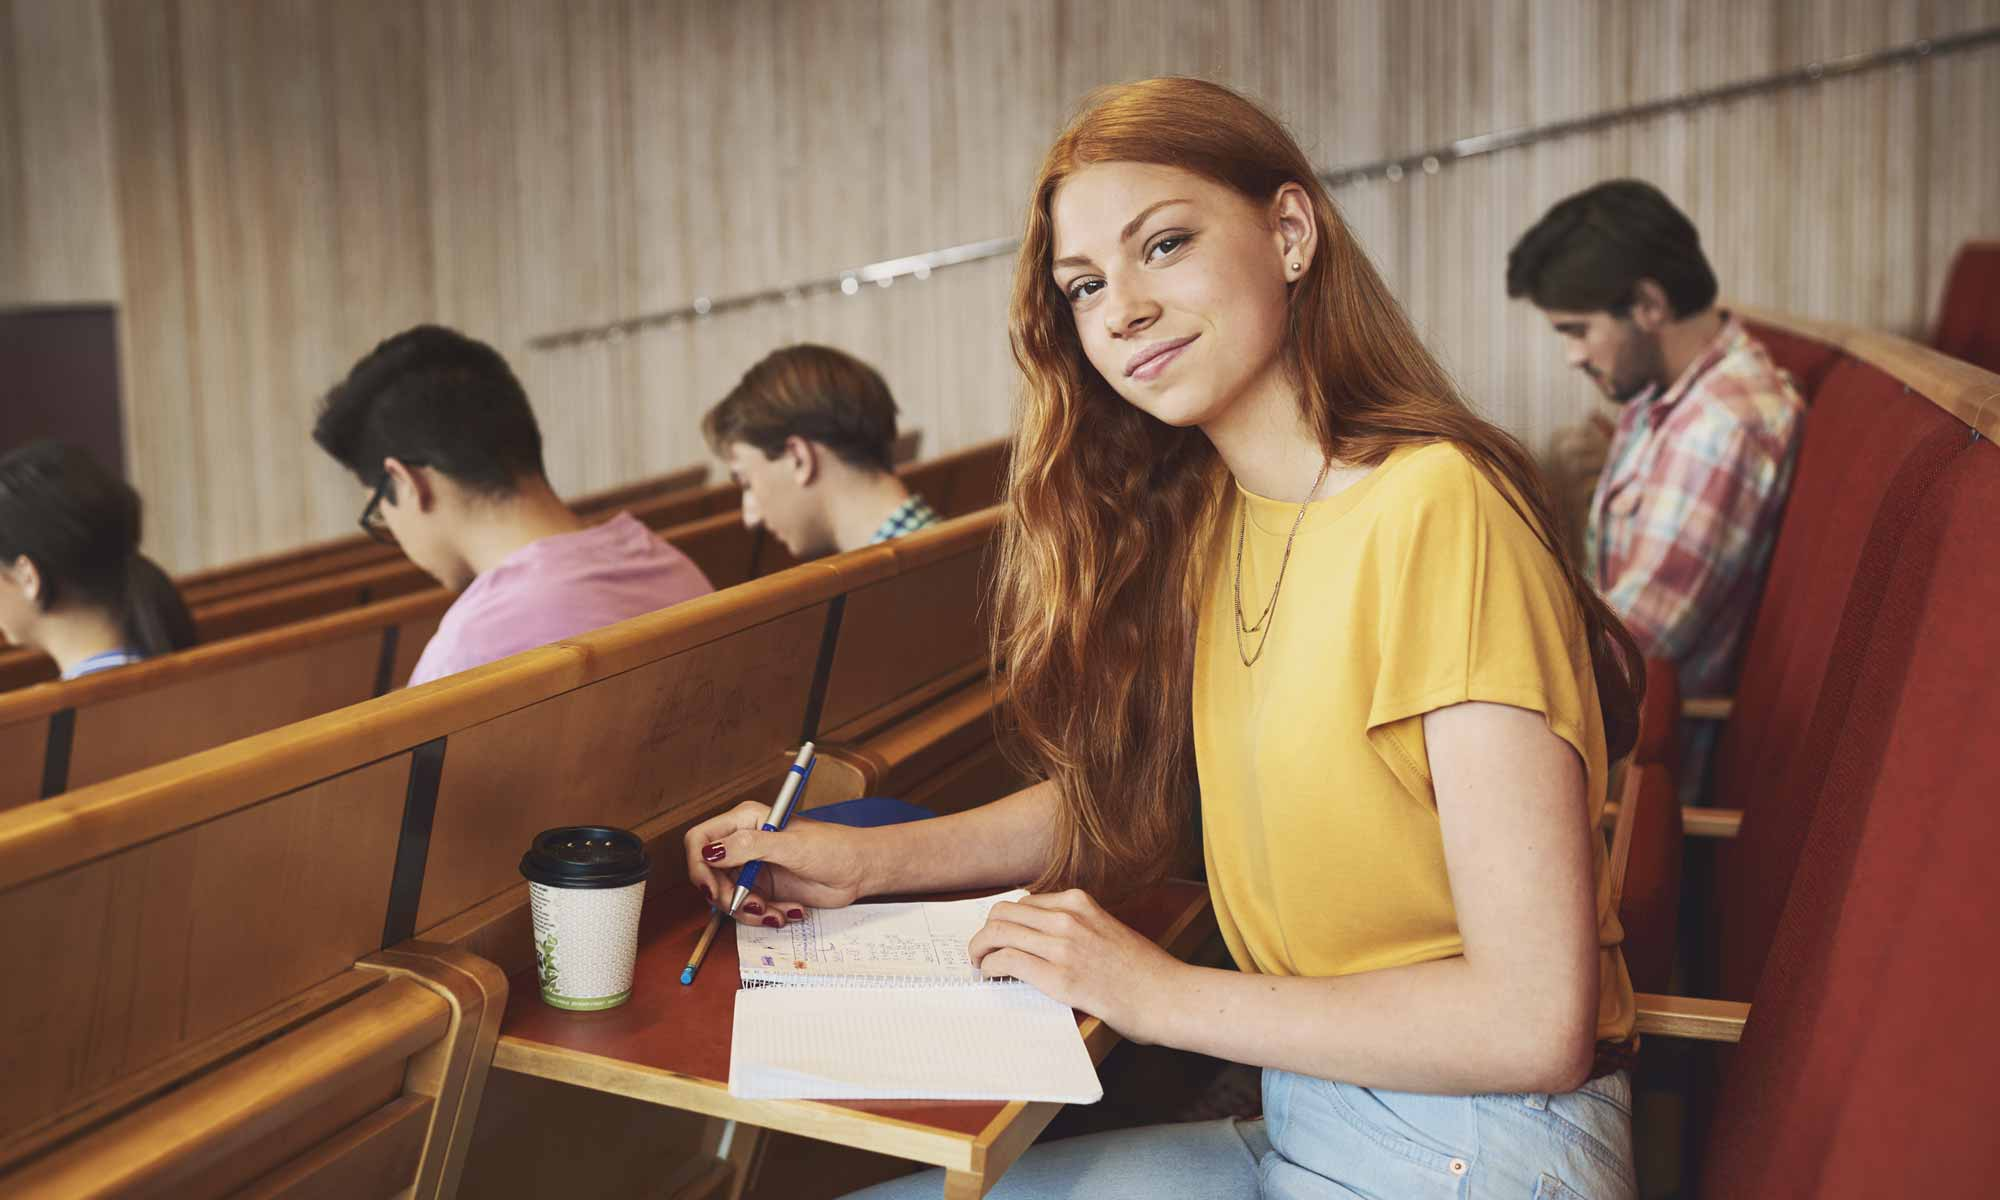 Female student in auditorium